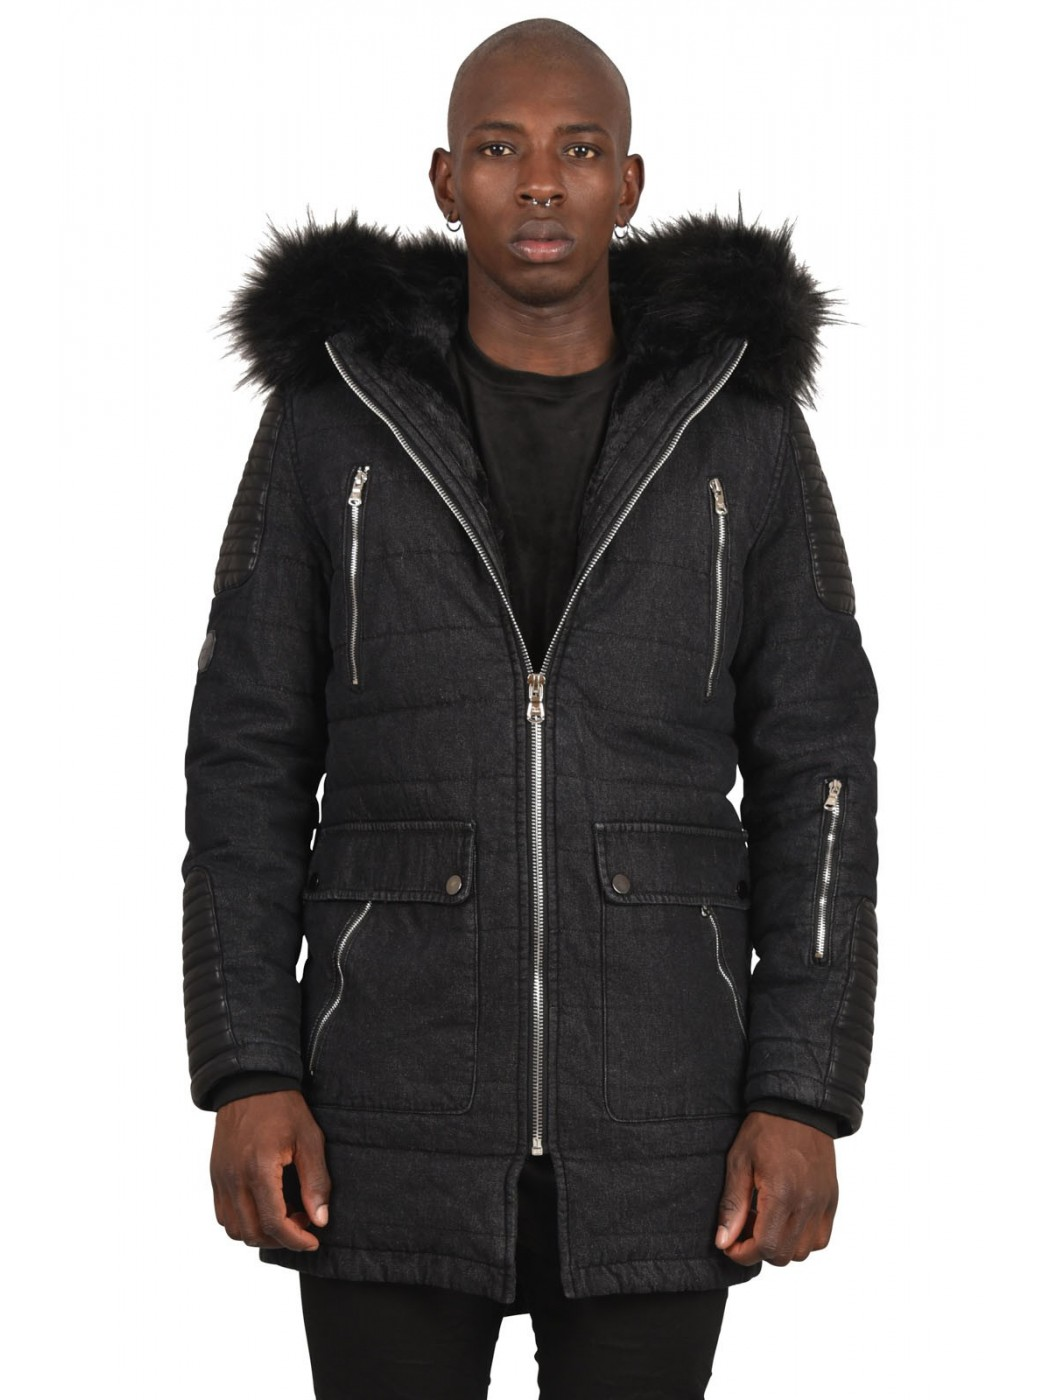 denim parka jacket with detachable fur project x paris. Black Bedroom Furniture Sets. Home Design Ideas